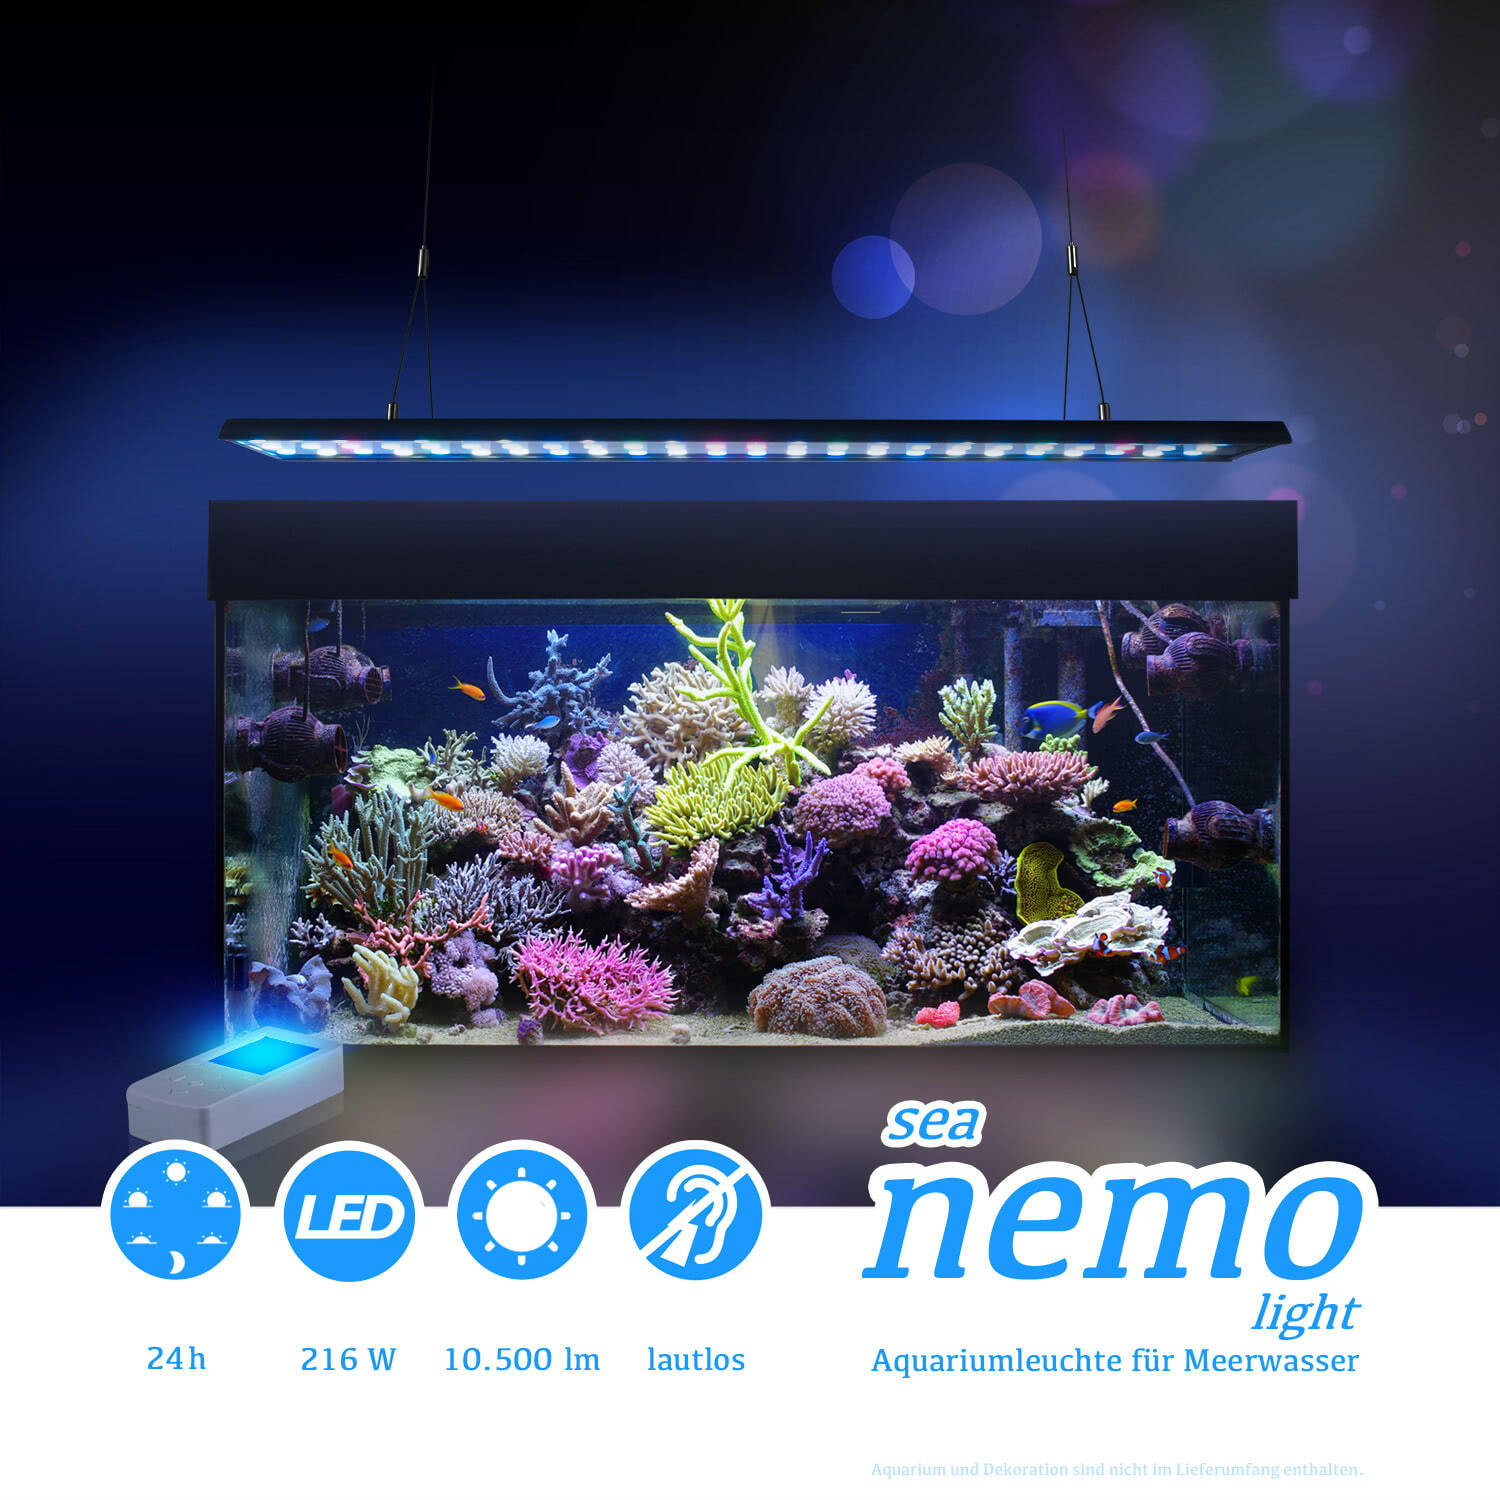 esmart germany sea nemo 3 led meerwasser aquarium korallen beleuchtung lampe ebay. Black Bedroom Furniture Sets. Home Design Ideas